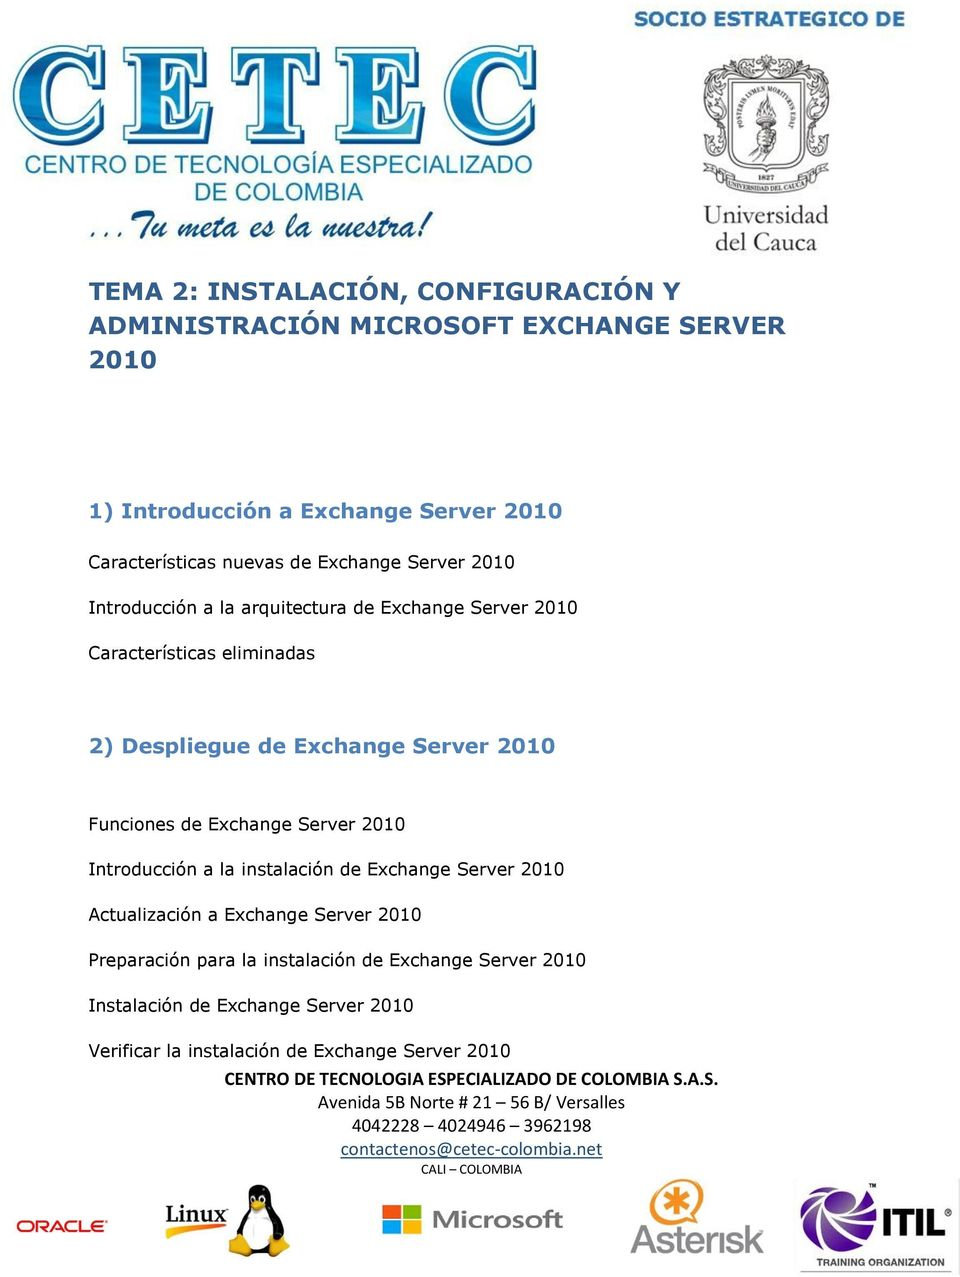 Server 2010 Funciones de Exchange Server 2010 Introducción a la instalación de Exchange Server 2010 Actualización a Exchange Server 2010